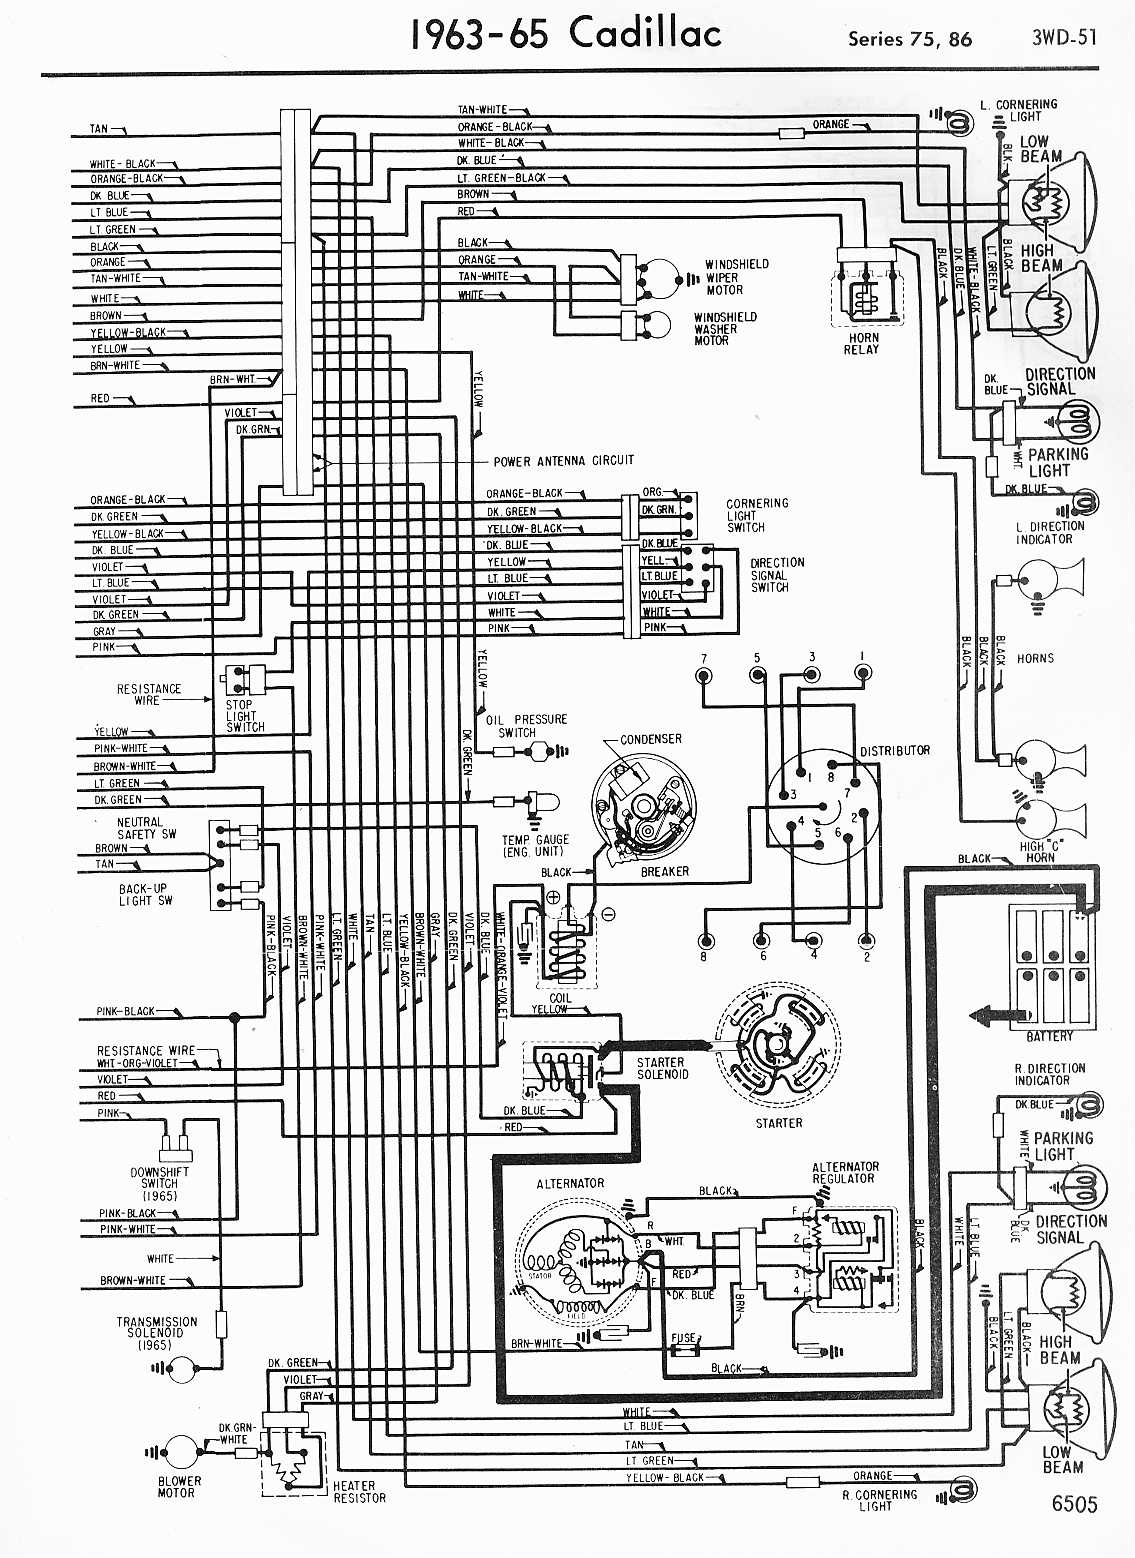 1950 Cadillac Wiring Schematic - Go Wiring Diagram on